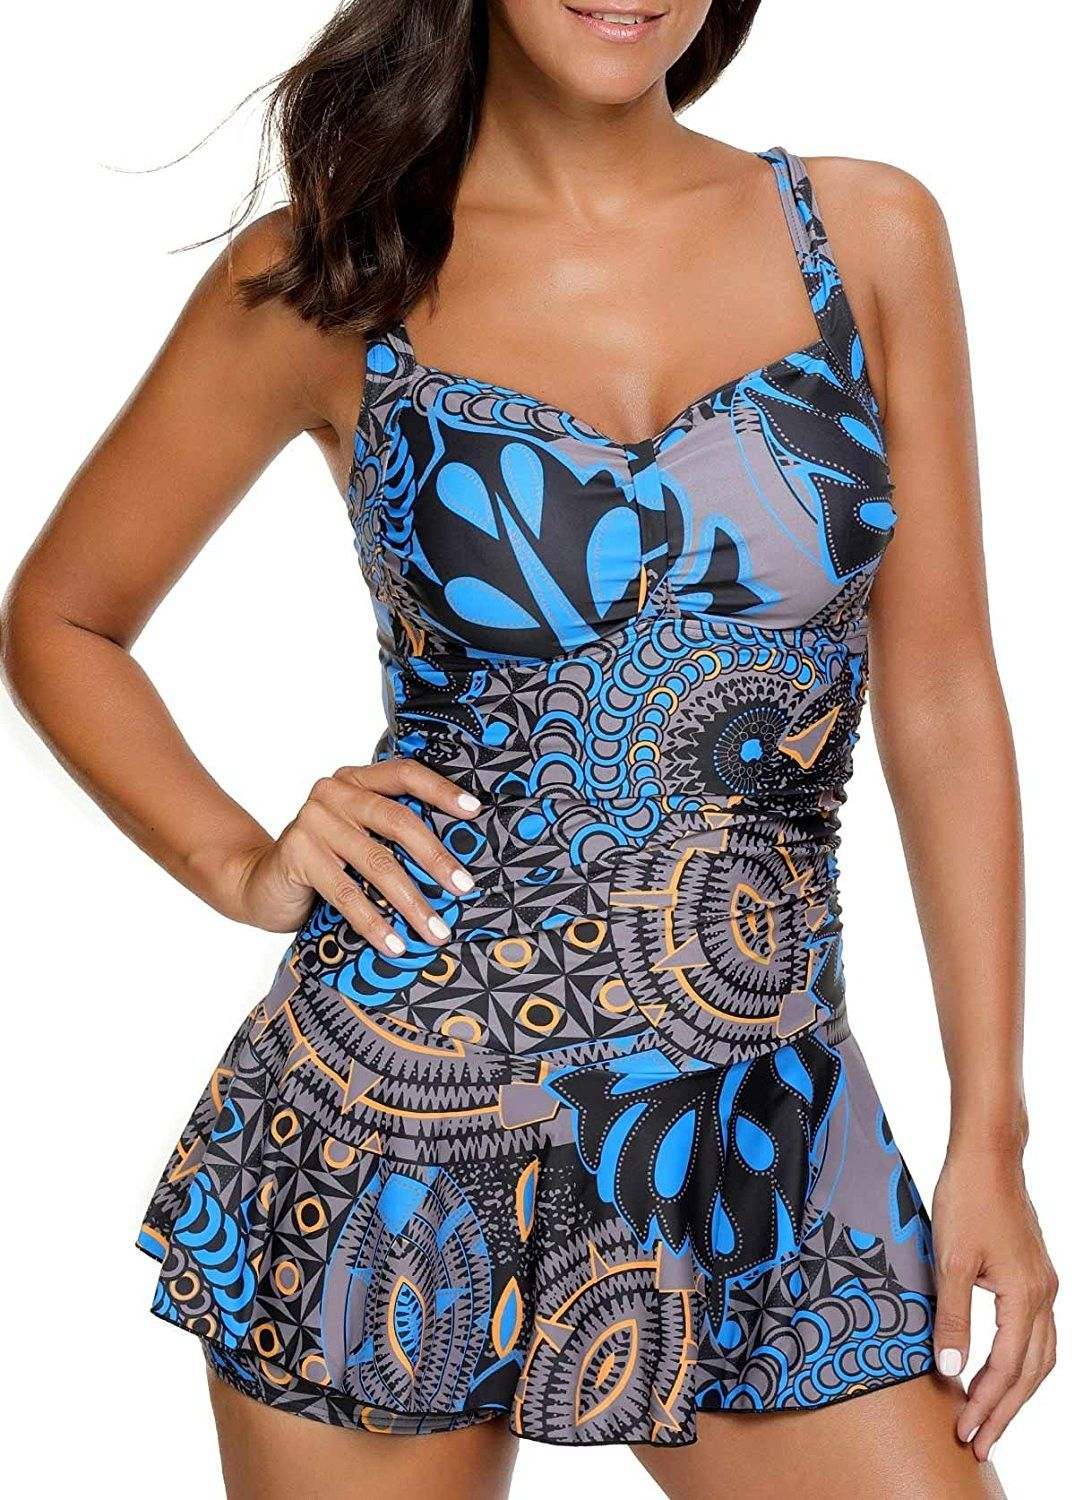 Women's Clothing, Swimsuits & Cover Ups, Tankinis,Women's Slimming One Piece Swimsuits For Woman ...